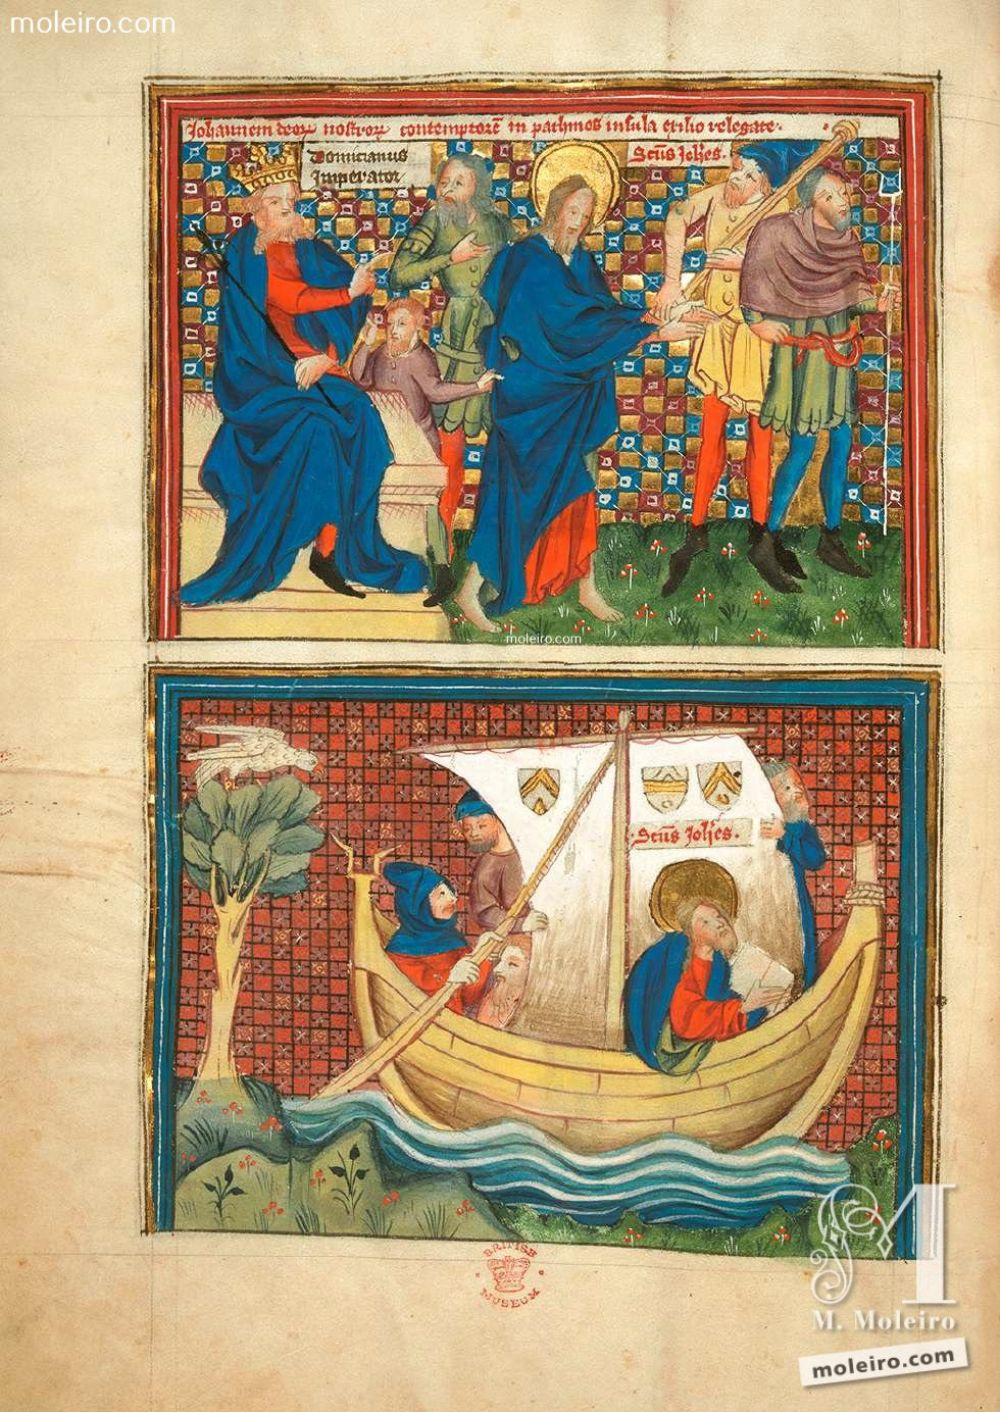 Miniature f. 2v · Domitian banishes St. John to the island of Patmos. St. John travels by boat to Patmos. Picture-book of the Life of St John and the Apocalypse, Add. Ms. 38121 (c. 1400) The British Library, London